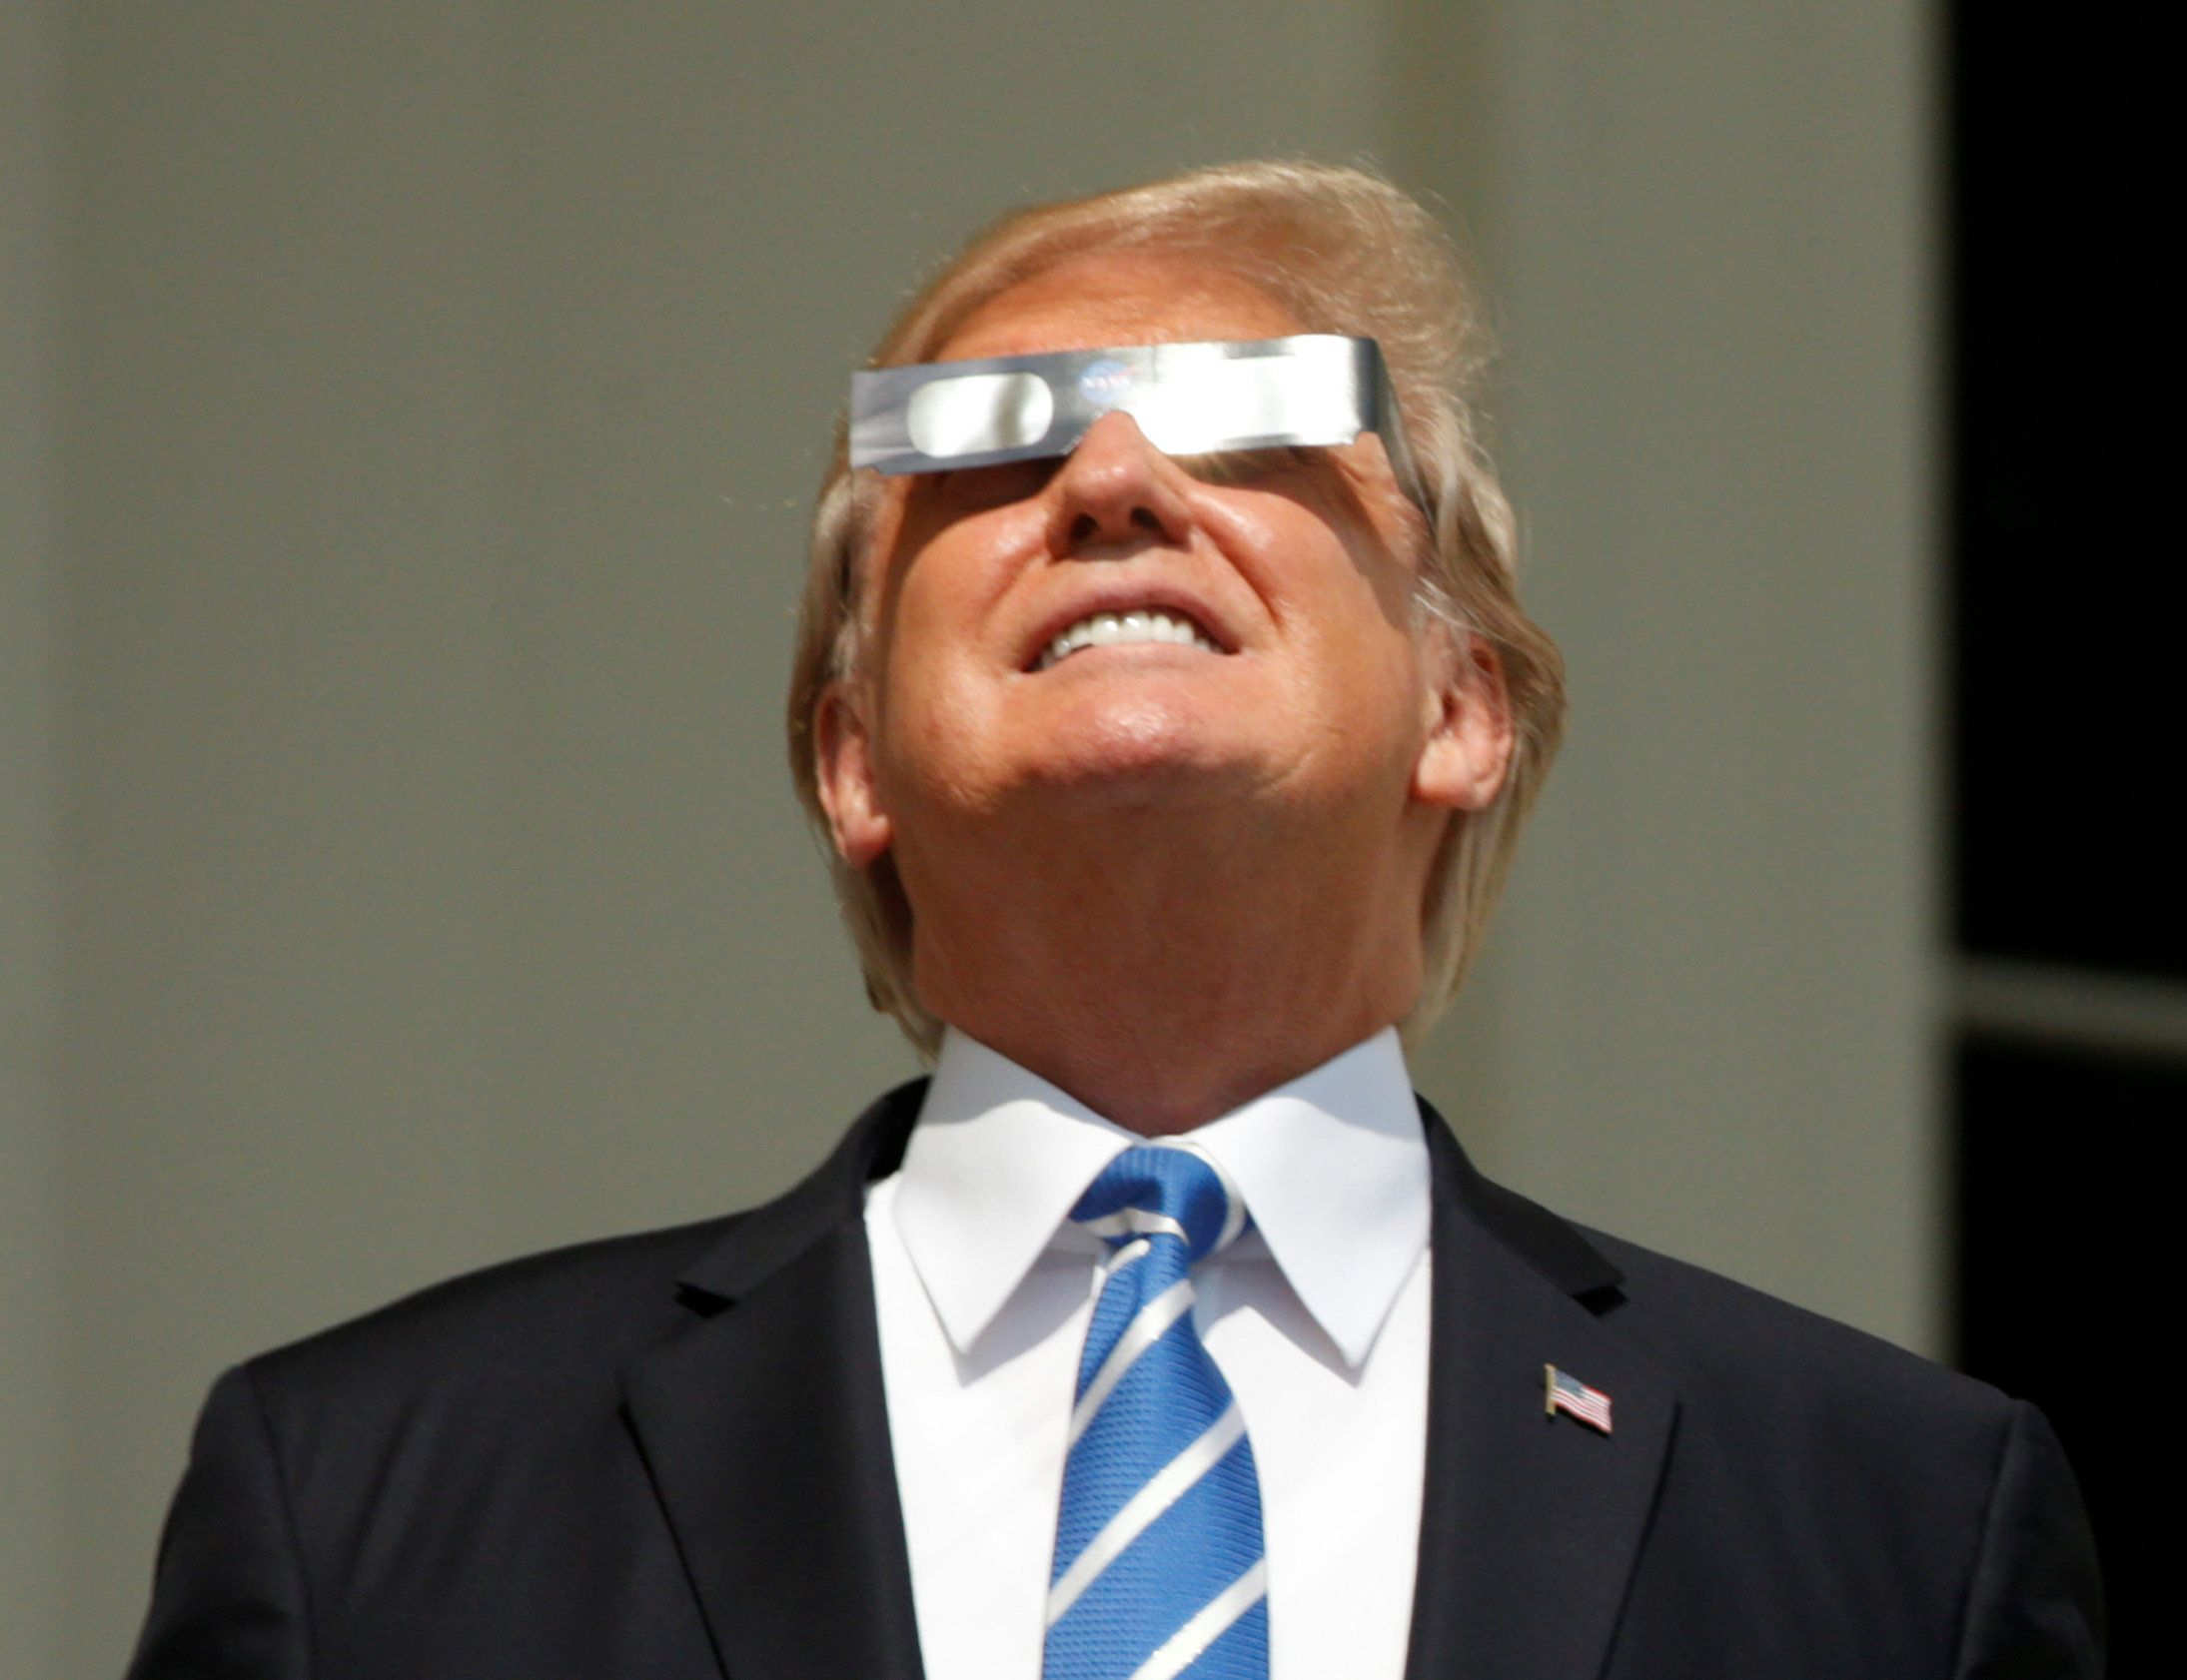 Don't Lie, You Looked At The Eclipse Just Like Donald Trump Did